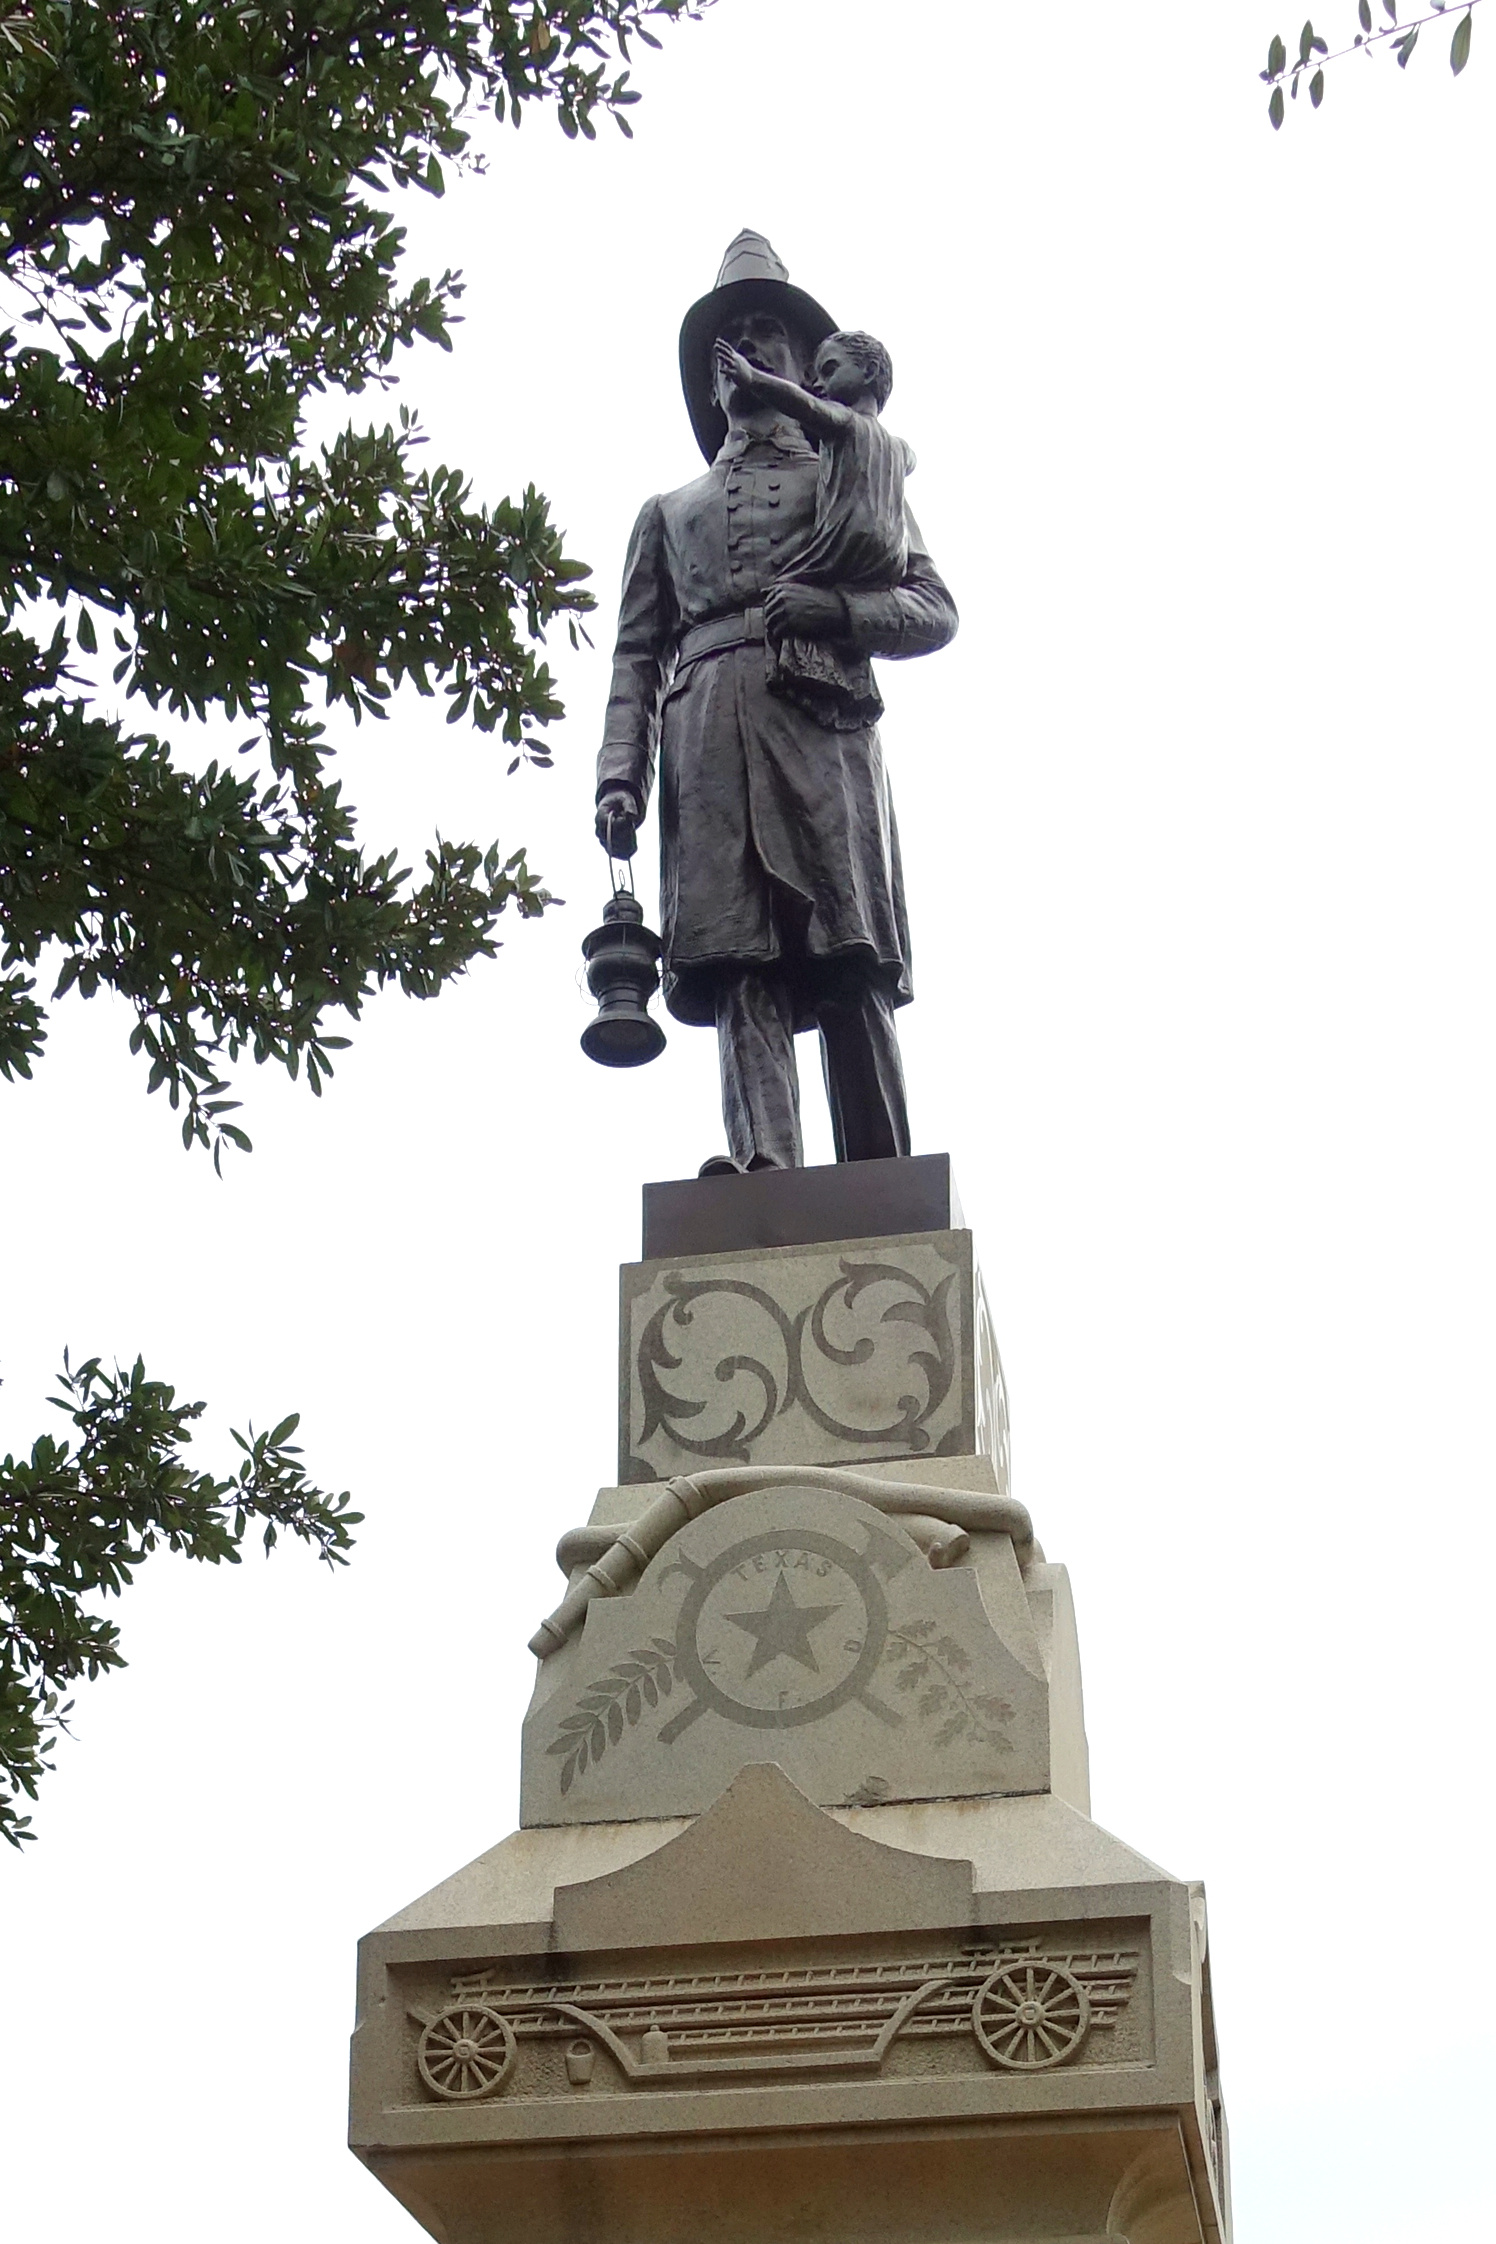 """1896, Entwurf von J. Segesman. </br>Quelle: <a href=""""https://commons.wikimedia.org/wiki/File:Volunteer_Firemen_Monument_-_Texas_State_Capitol_grounds_-_Austin,_Texas_-_DSC08297.jpg"""">User:Daderot / Wikimedia Commons</a></br> Lizenz: <a href=""""https://creativecommons.org/publicdomain/zero/1.0/deed.de"""">Public Domain / Creative Commons CC0 1.0</a>"""